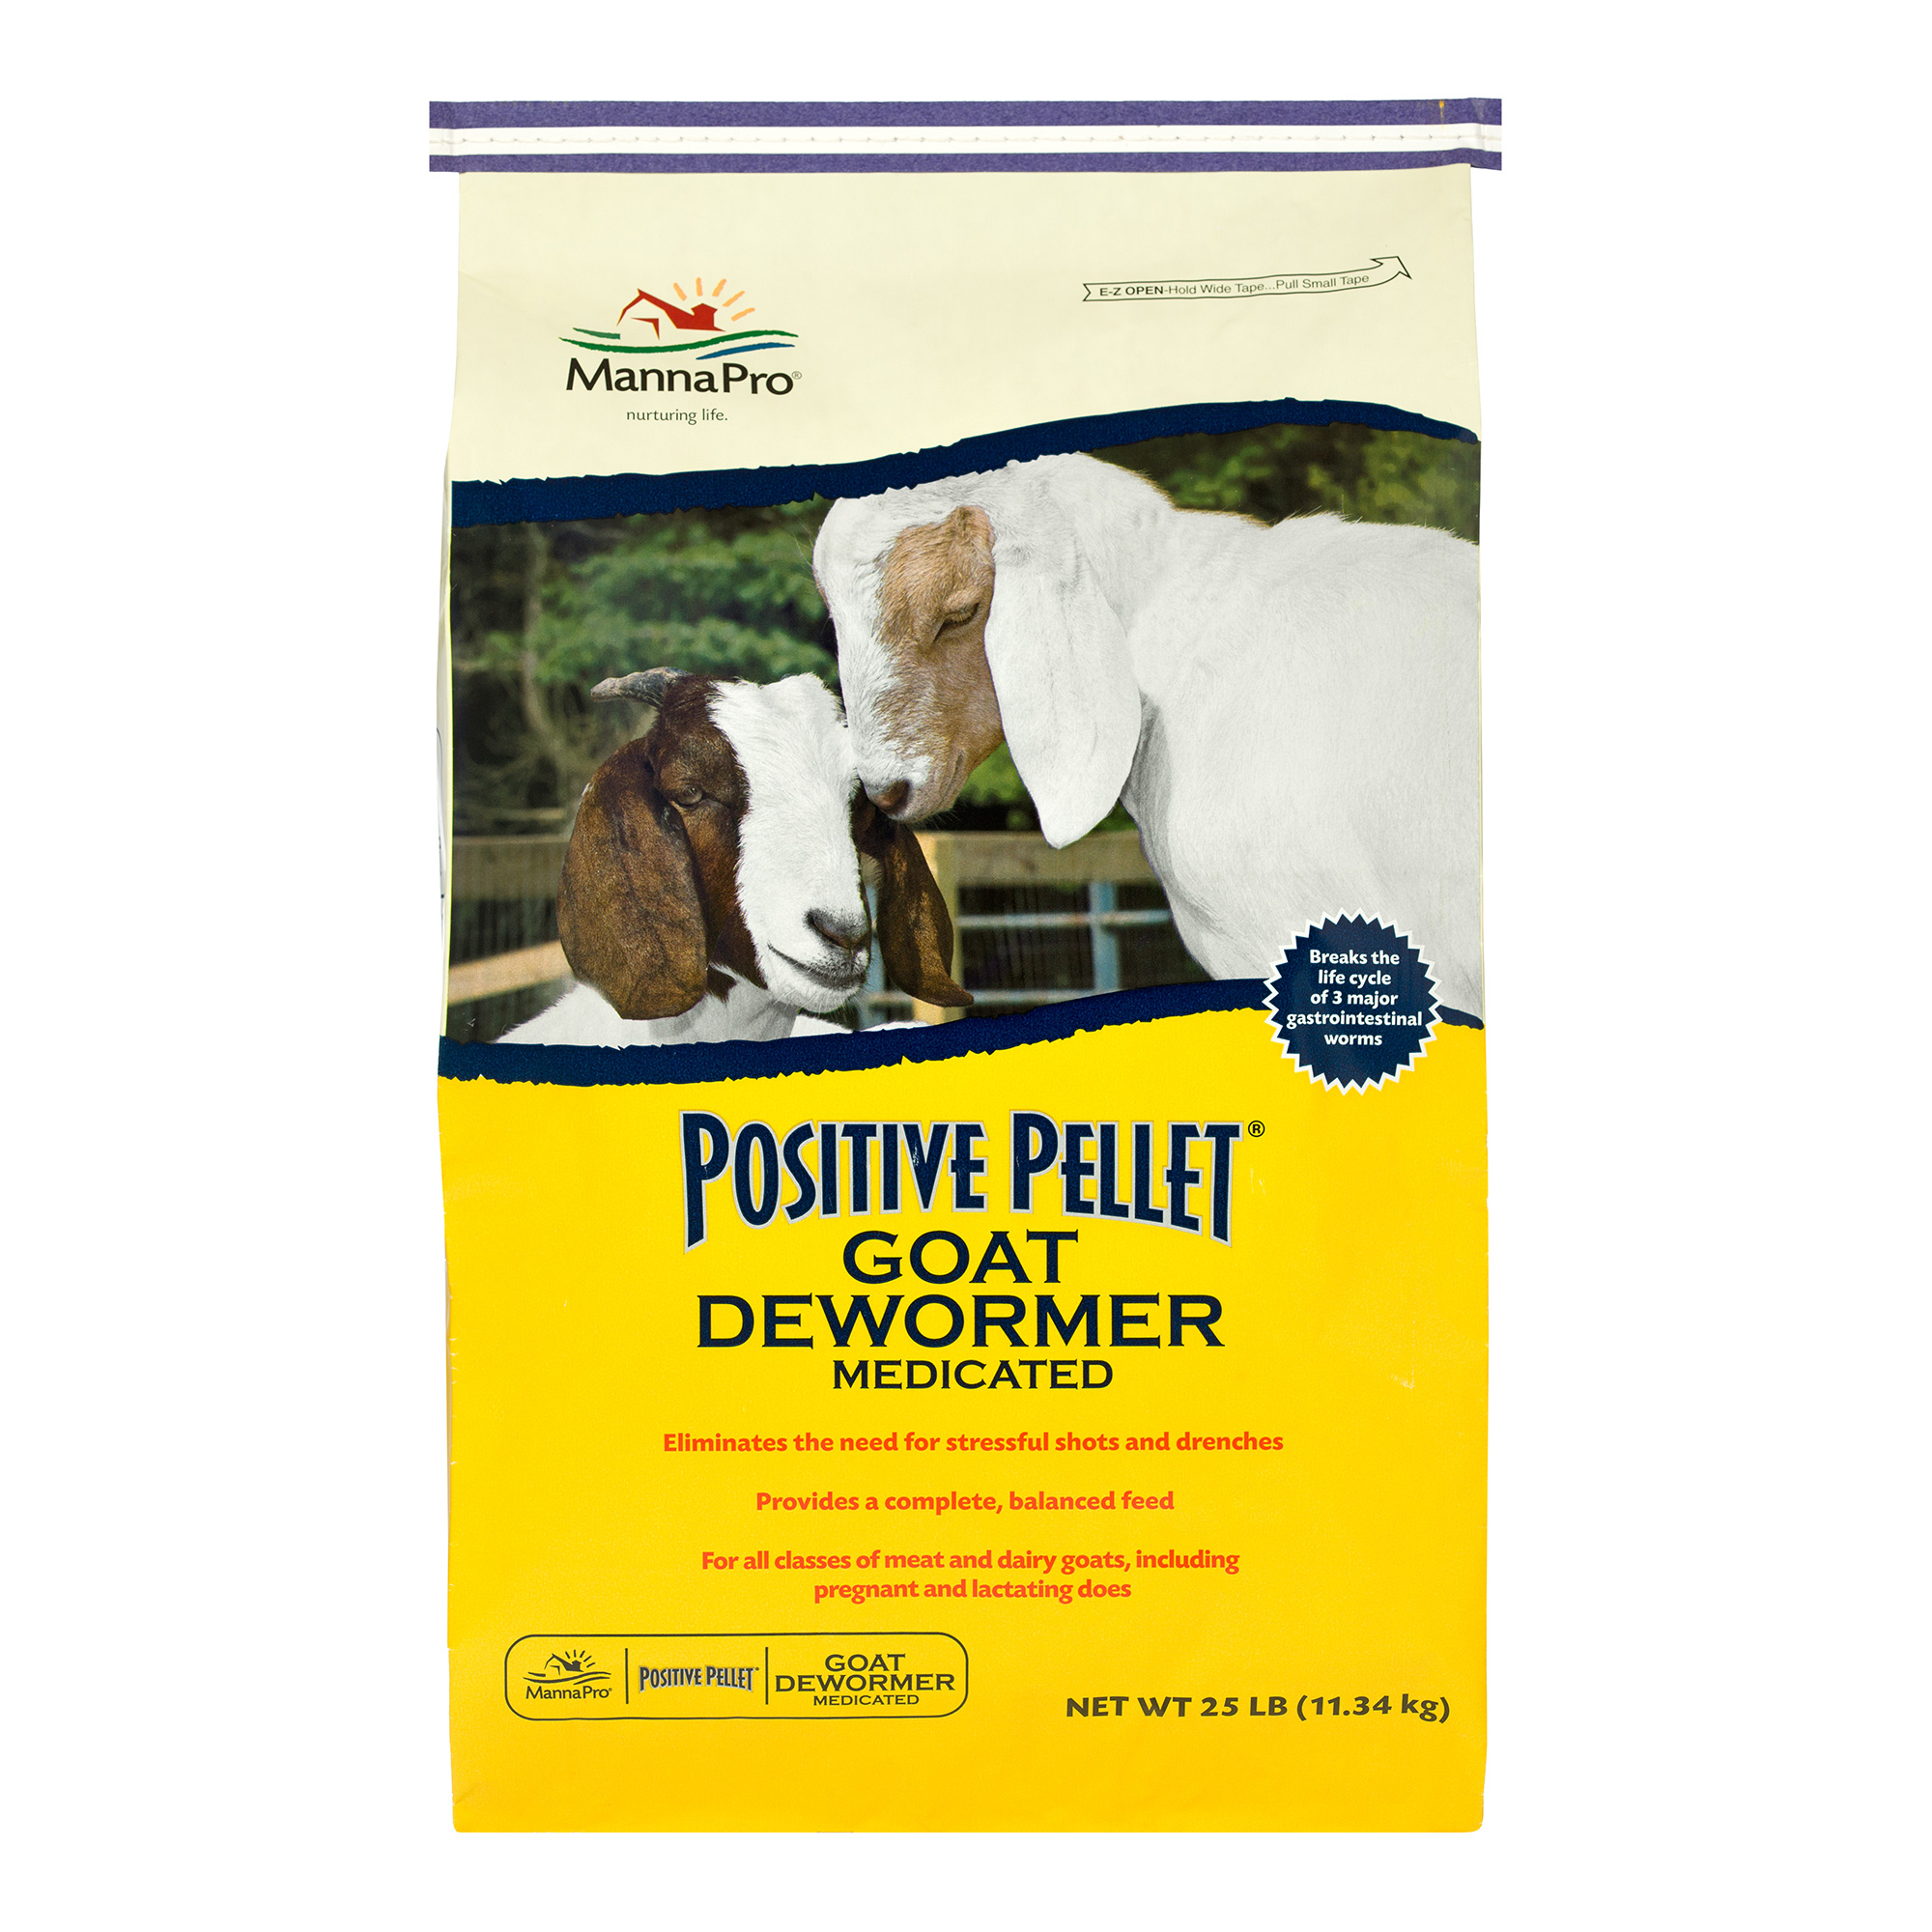 Manna Pro Positive Pellet Dewormer Medicated Goat Feed, 6-lb